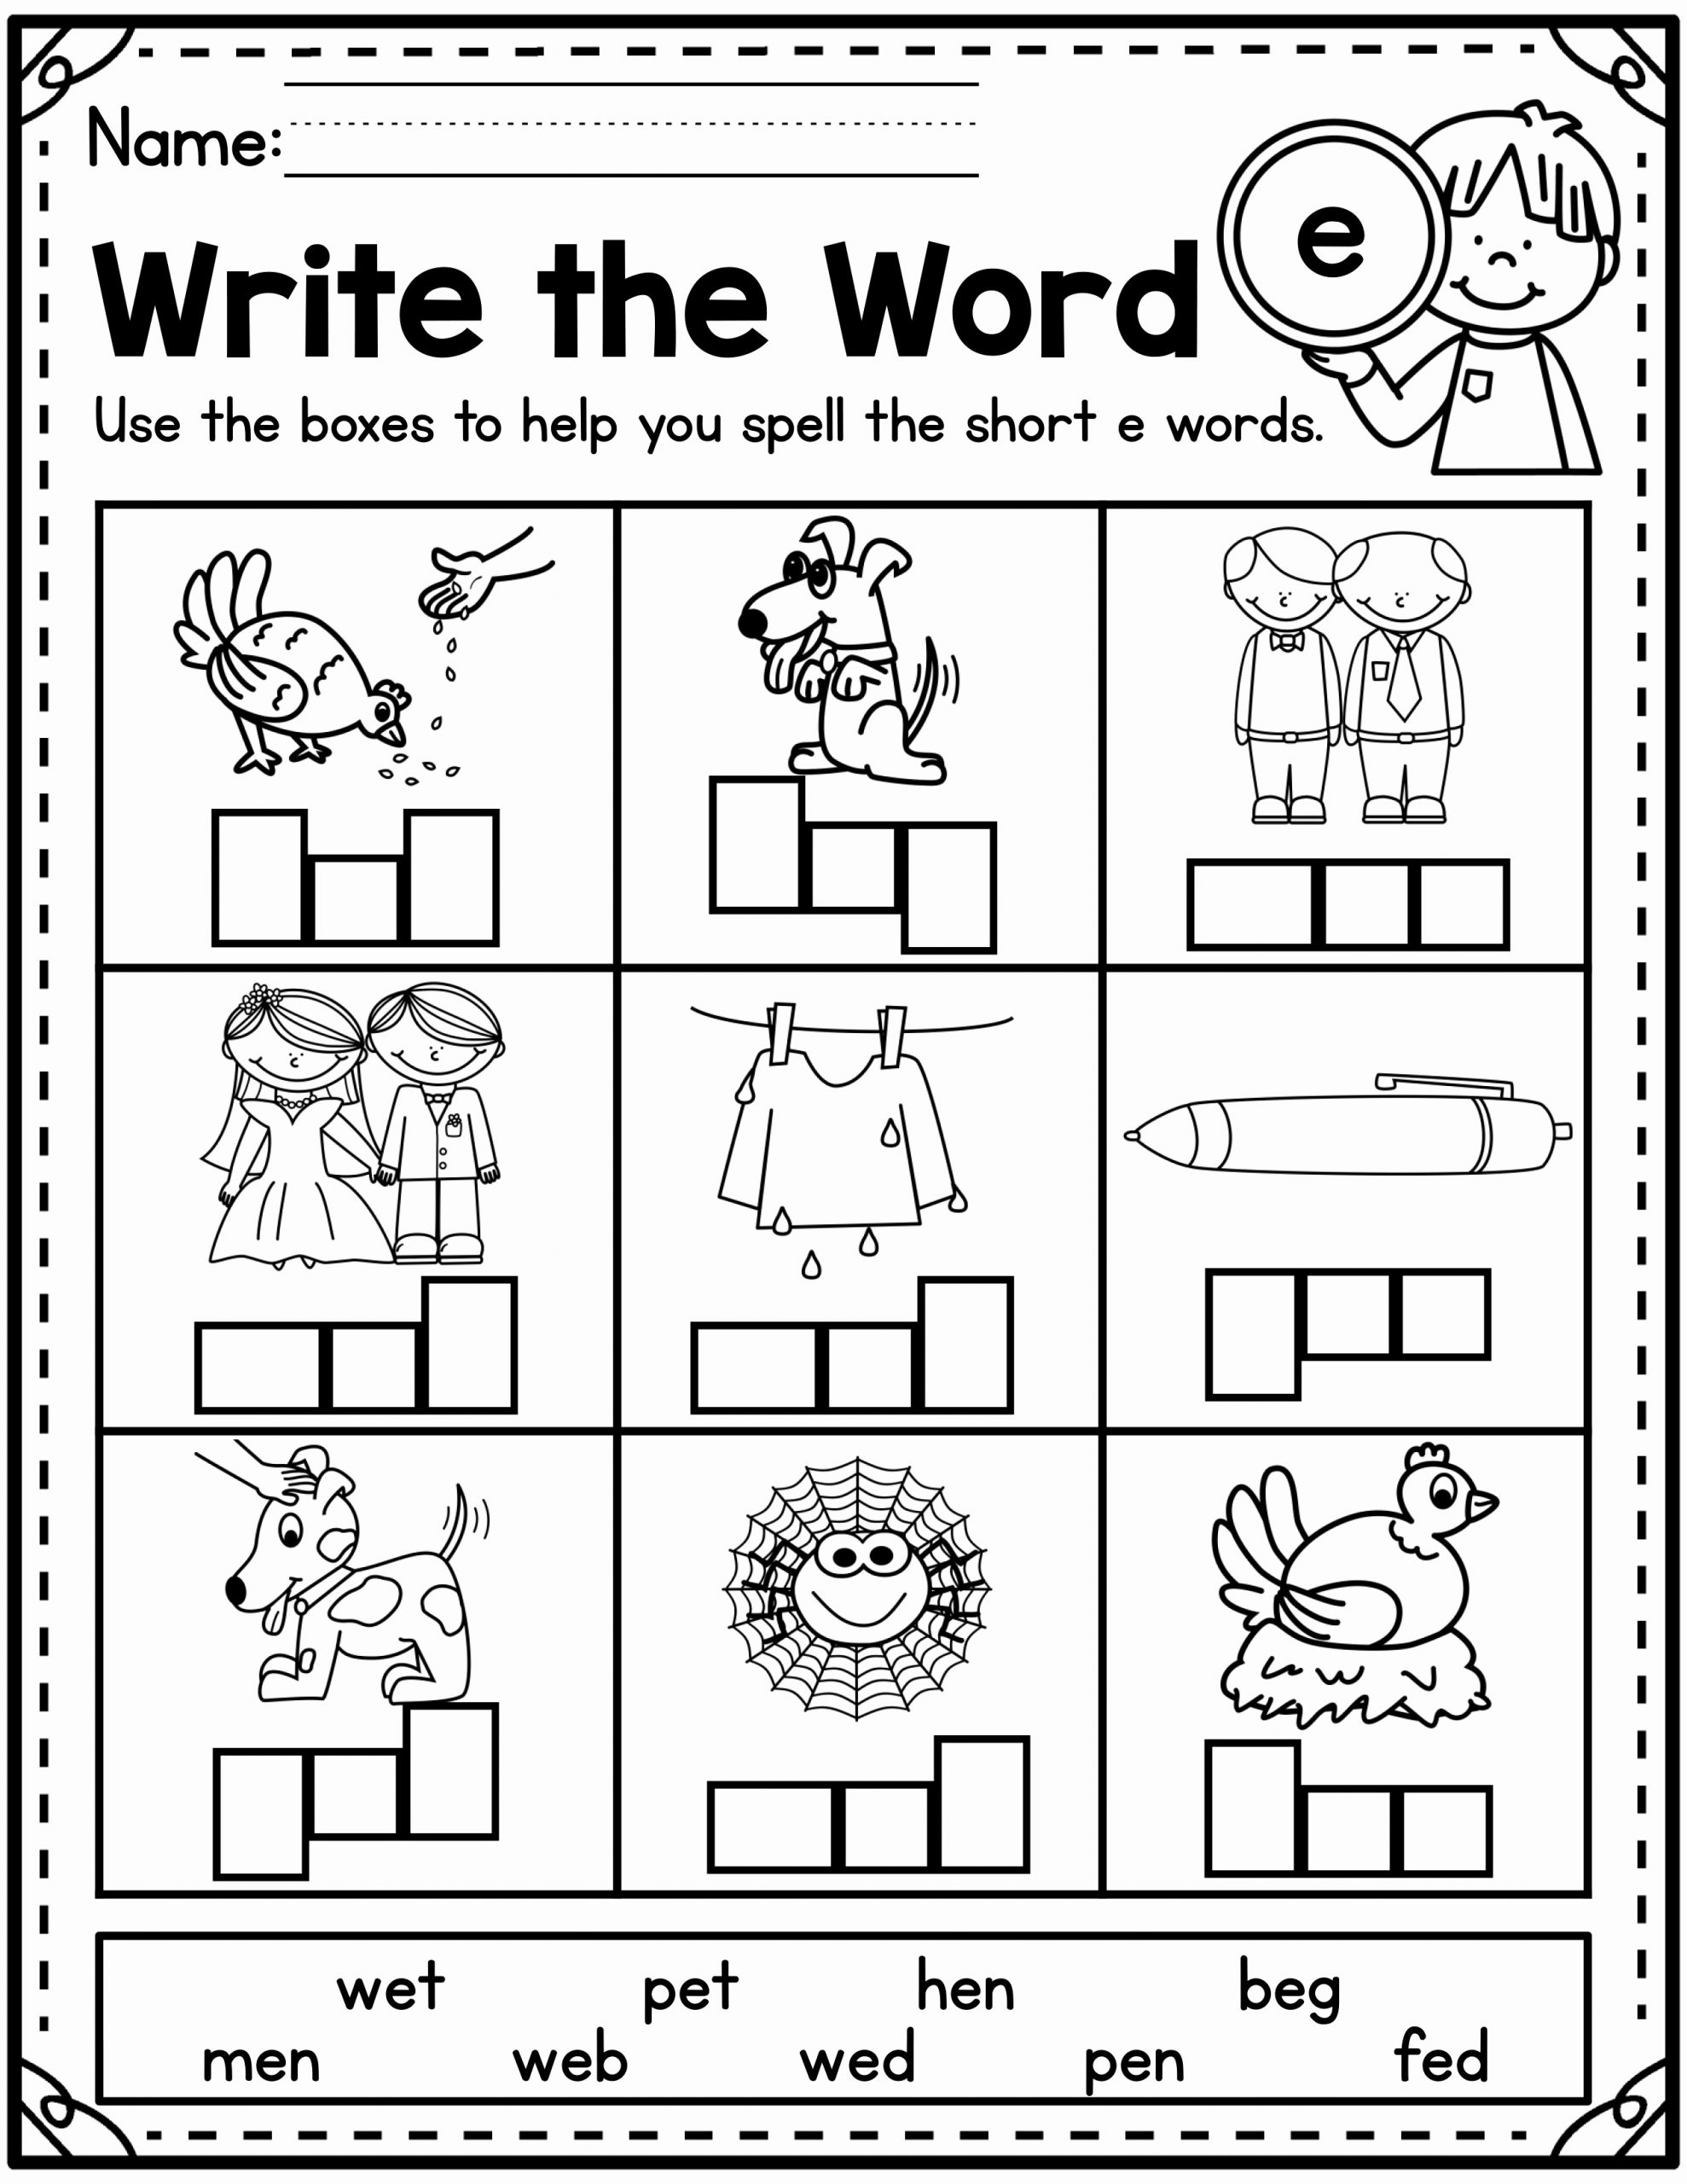 Cvc Worksheets for Kinder Luxury Cvc Worksheets Madebyteachers